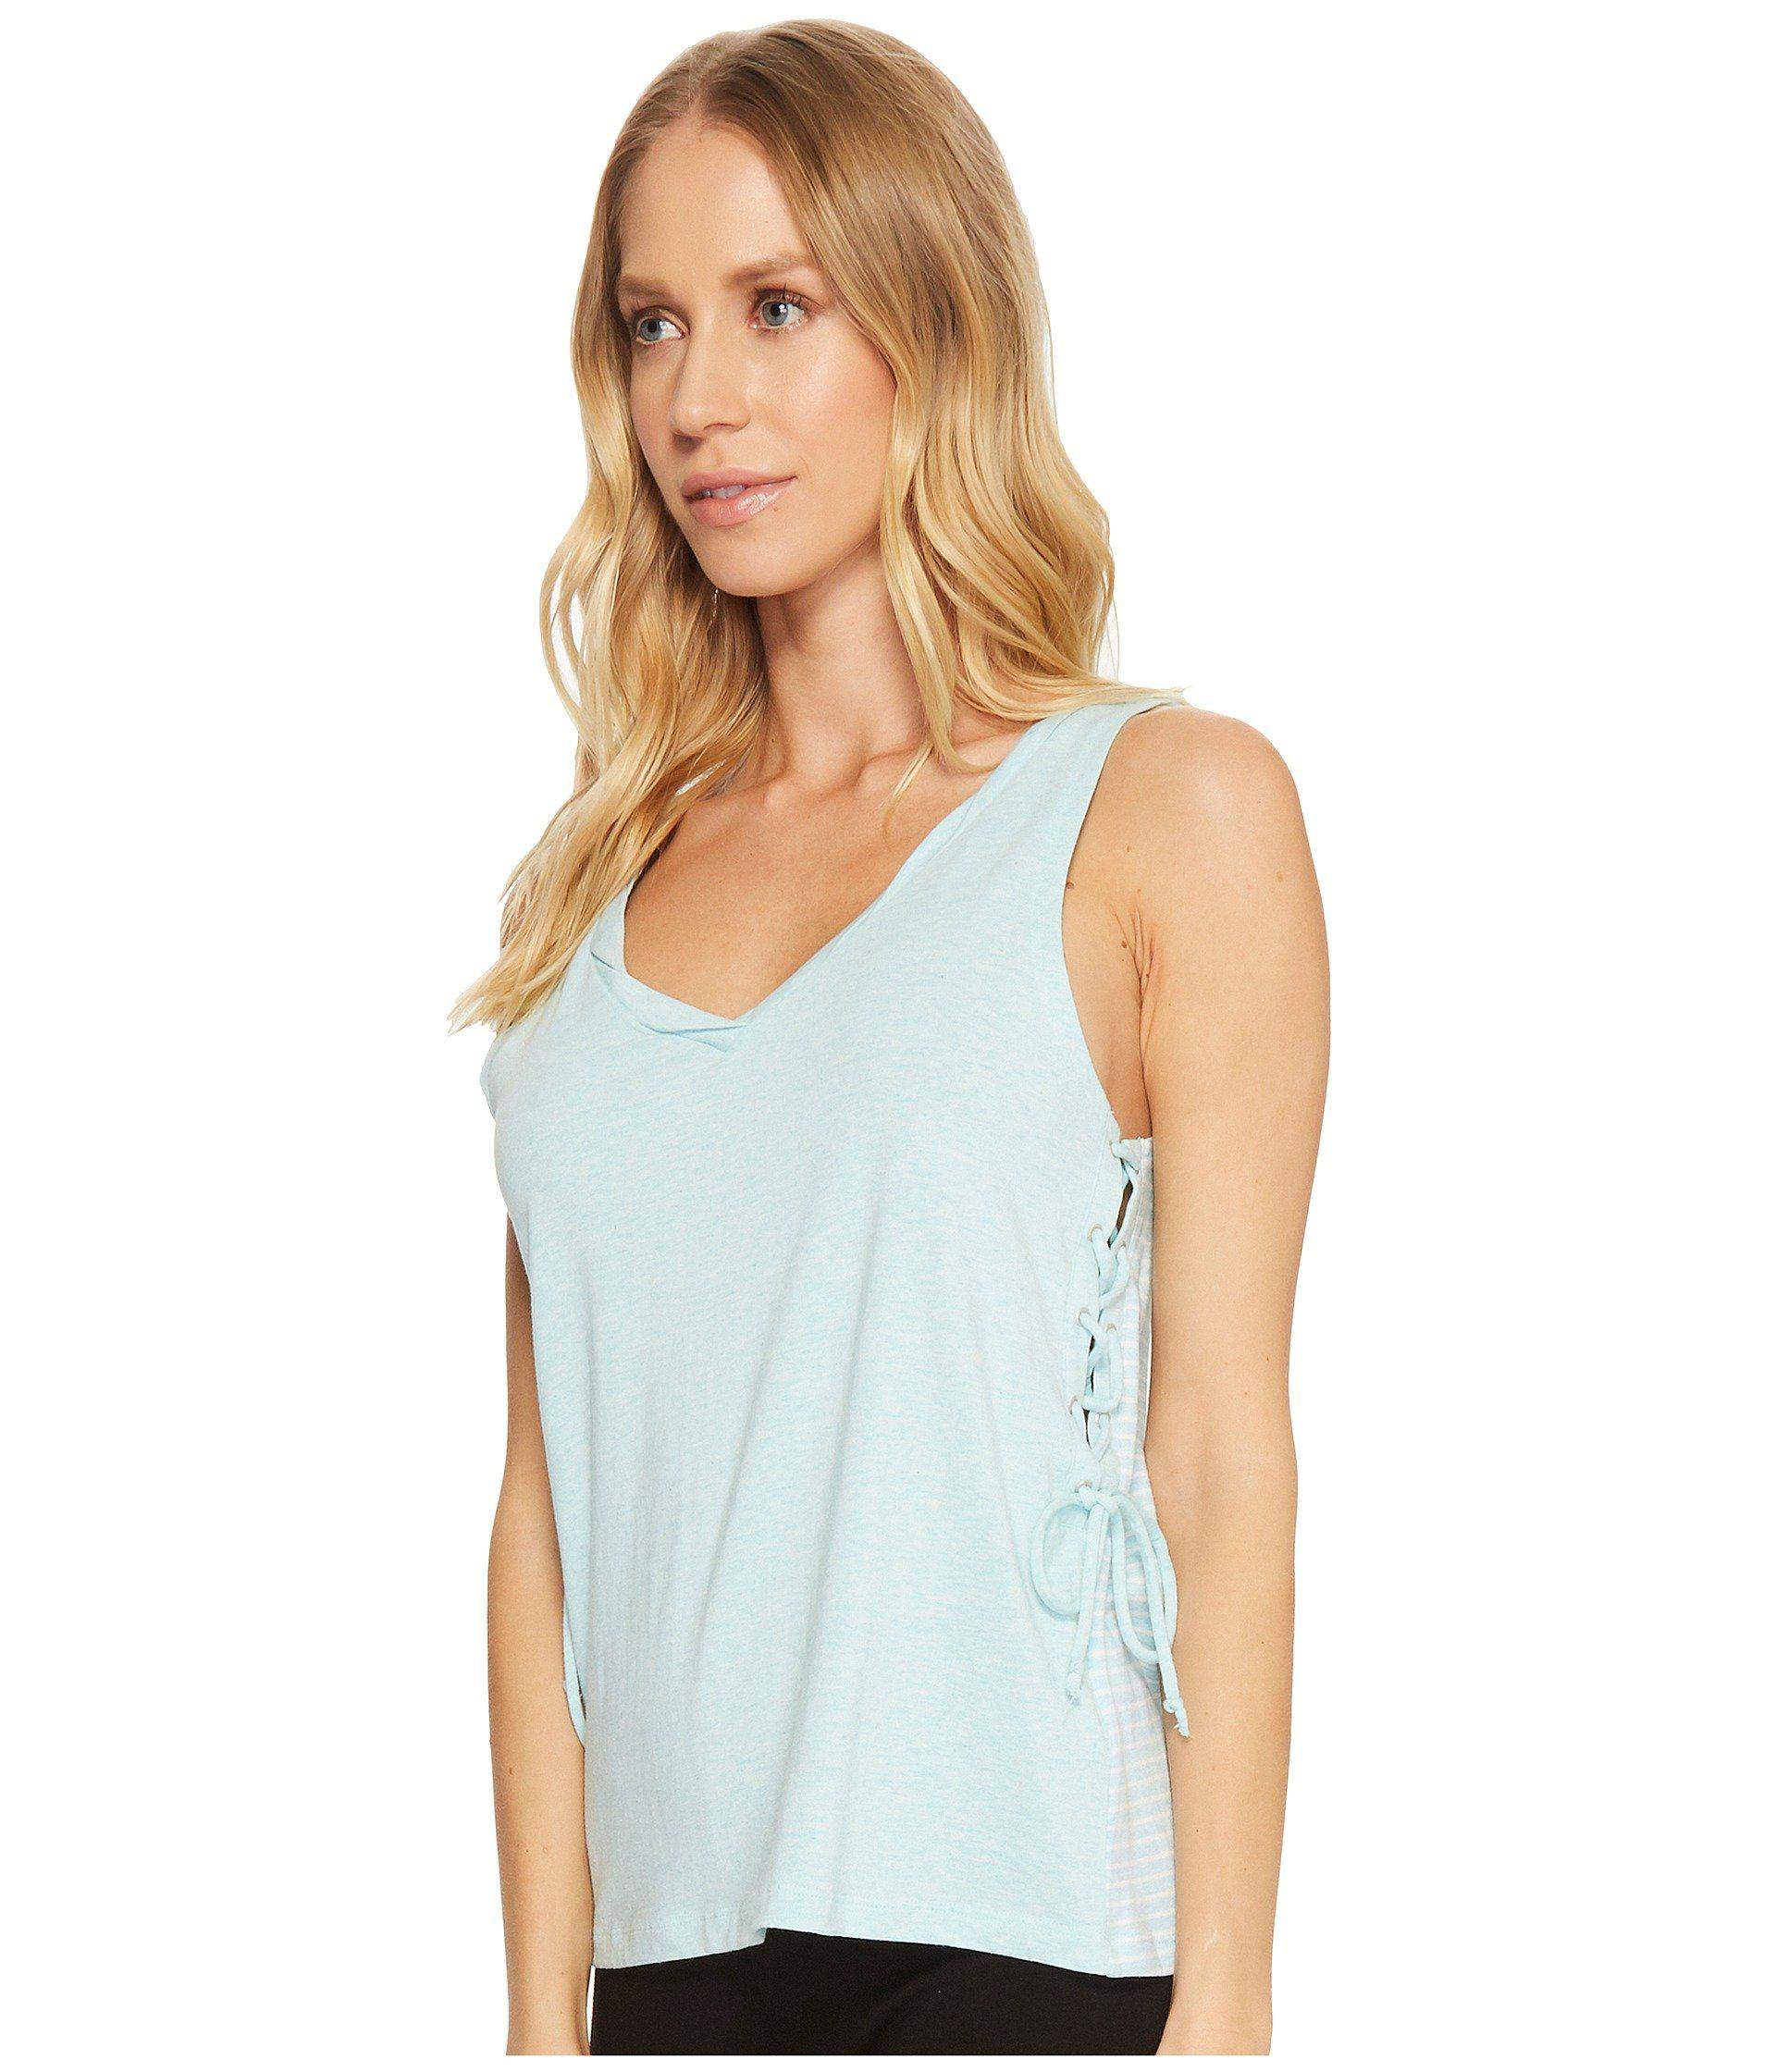 778316d42df04b Lyst - Splendid Lace-up Lounge Tank Top in Blue - Save 59%